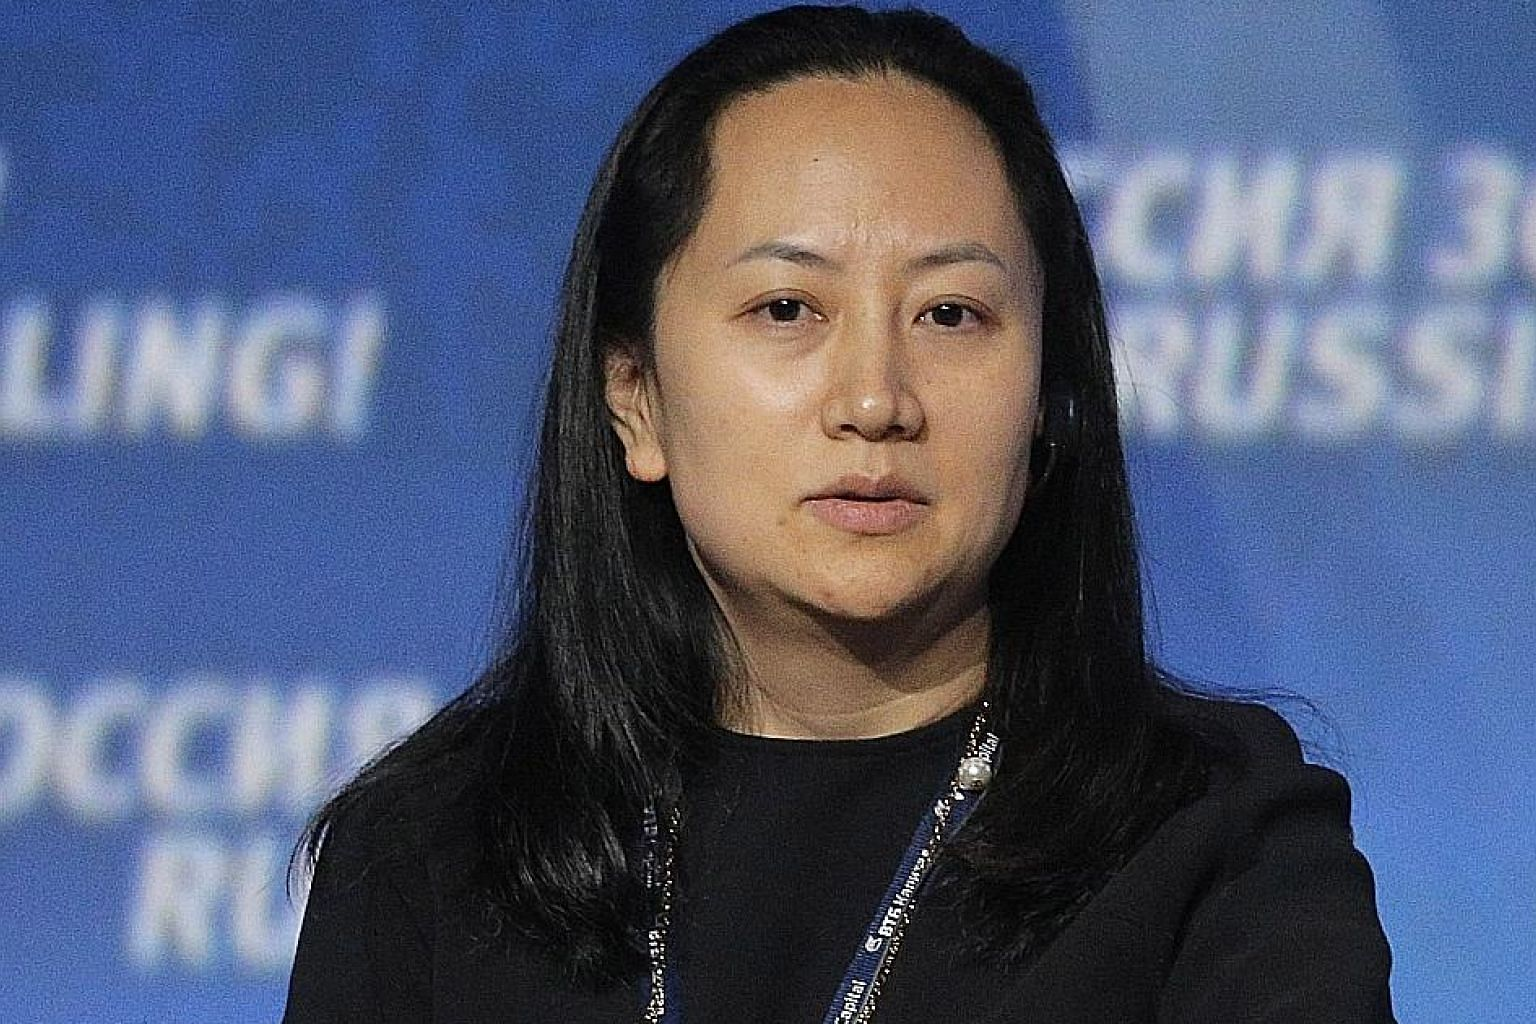 Huawei chief financial officer Meng Wanzhou, who was arrested in Canada last Saturday, was promoted in March to be one of four vice-chairmen of the firm, making her a likely heir-apparent.